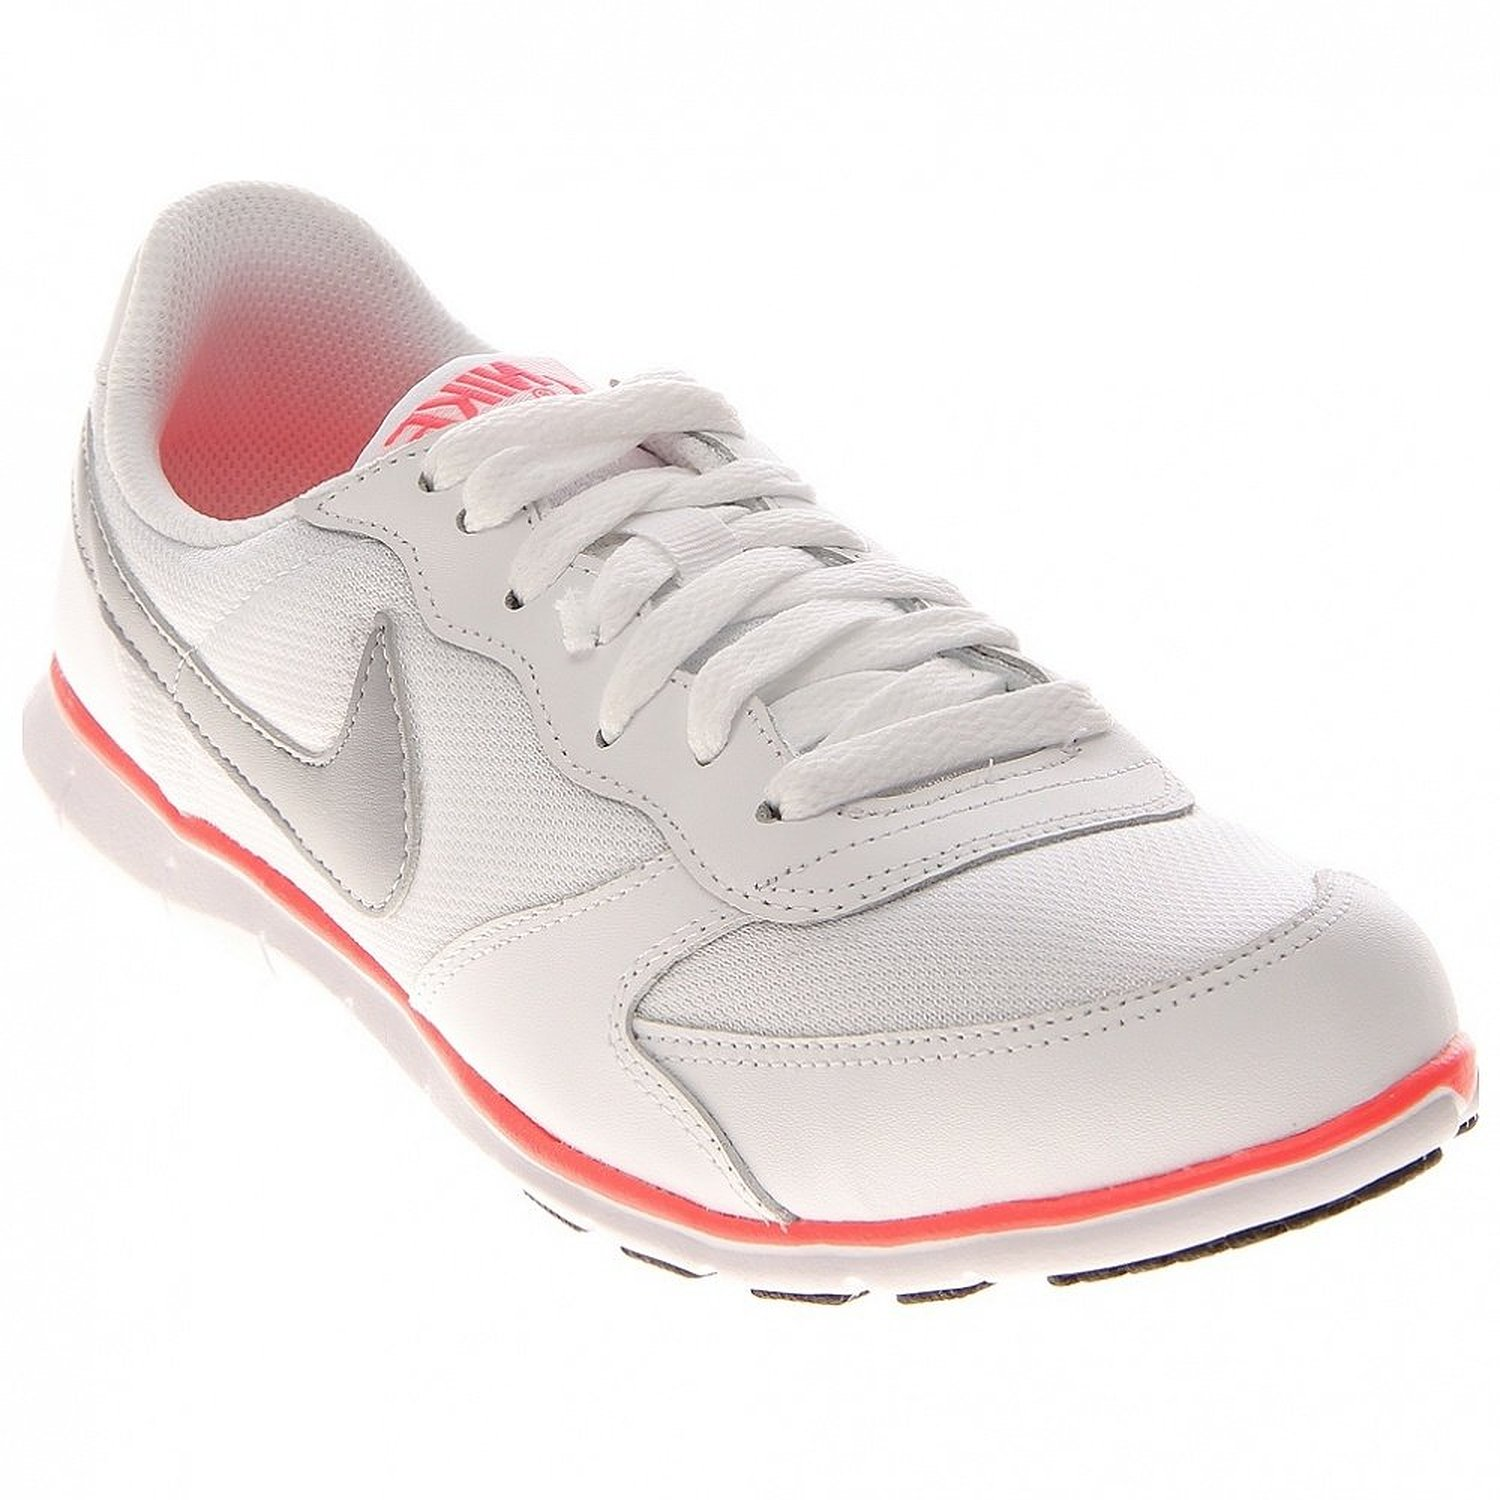 Amazon.com: Nike ECLIPSE NM, Sku#324857-166, Size 12: Shoes